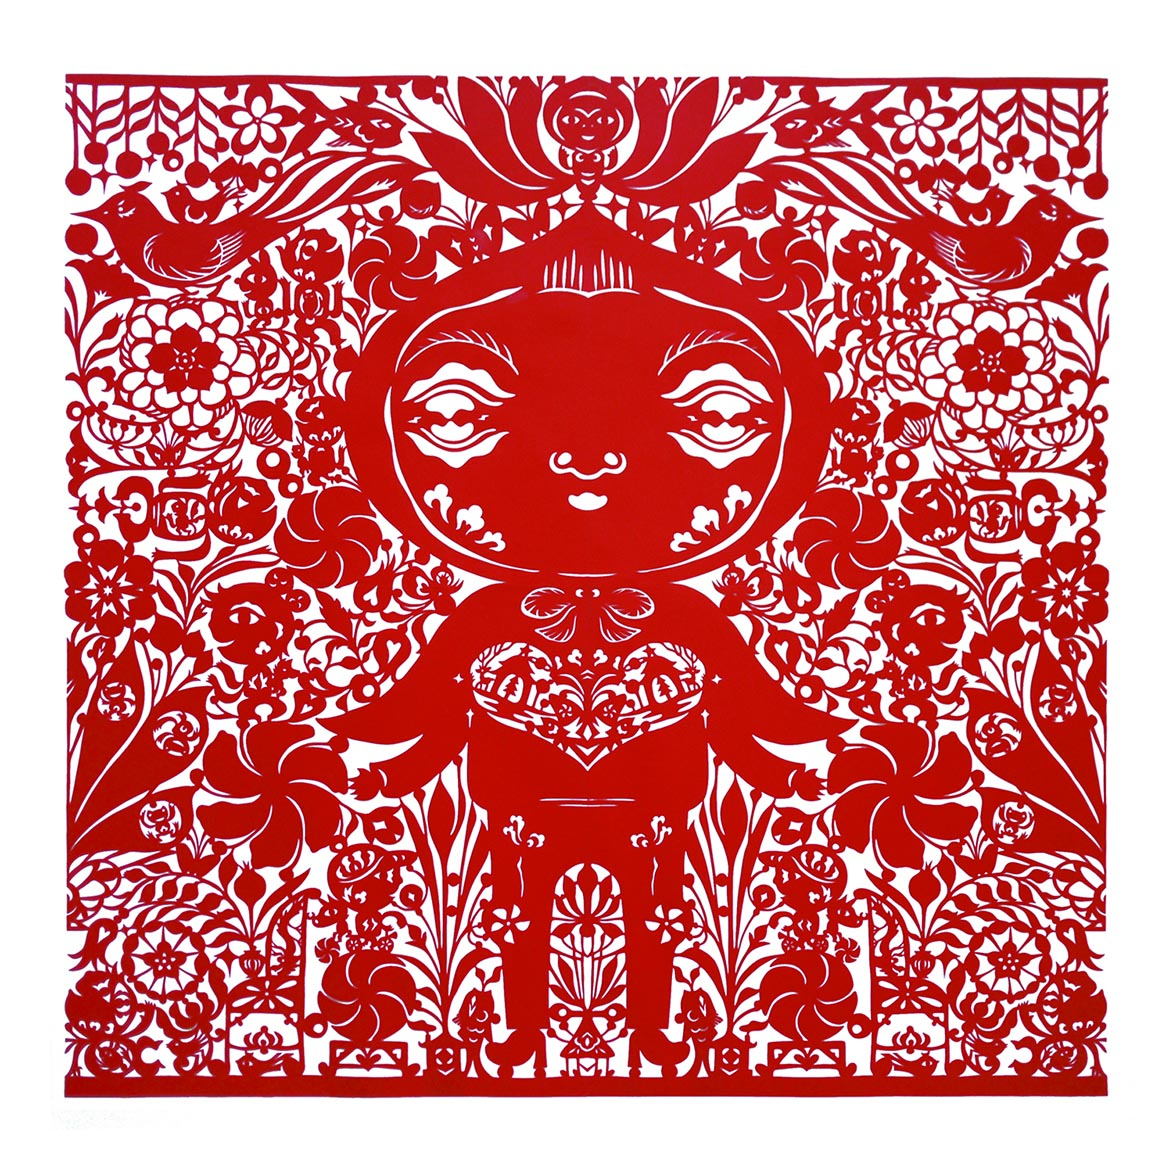 The Kingdom Full of Love and Courage to Fly Thin and Tough Red Silk Fabric 120x120cm